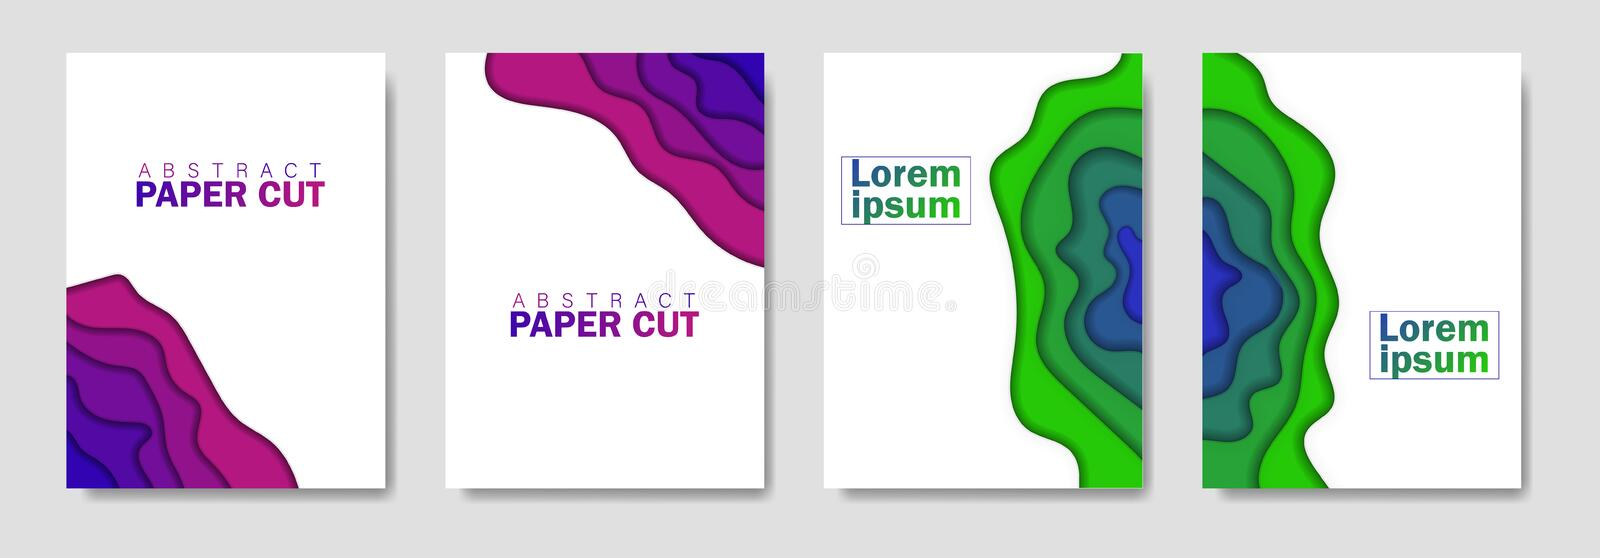 Modern creative set of posters with a 3d abstract background and paper cut shapes. Design layout, minimal template for flyers, web royalty free illustration